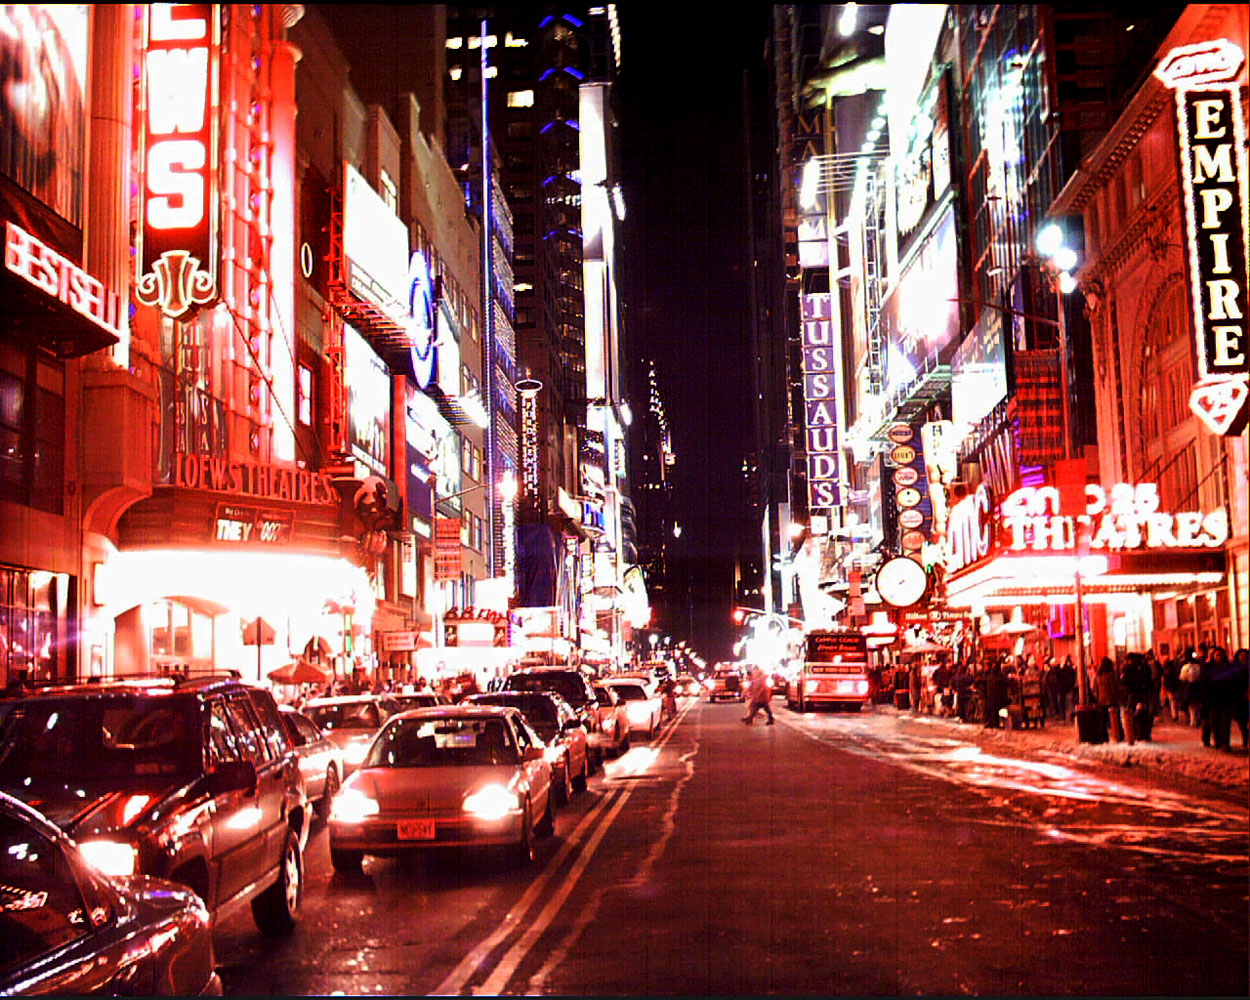 42nd Street Times Square, New York City